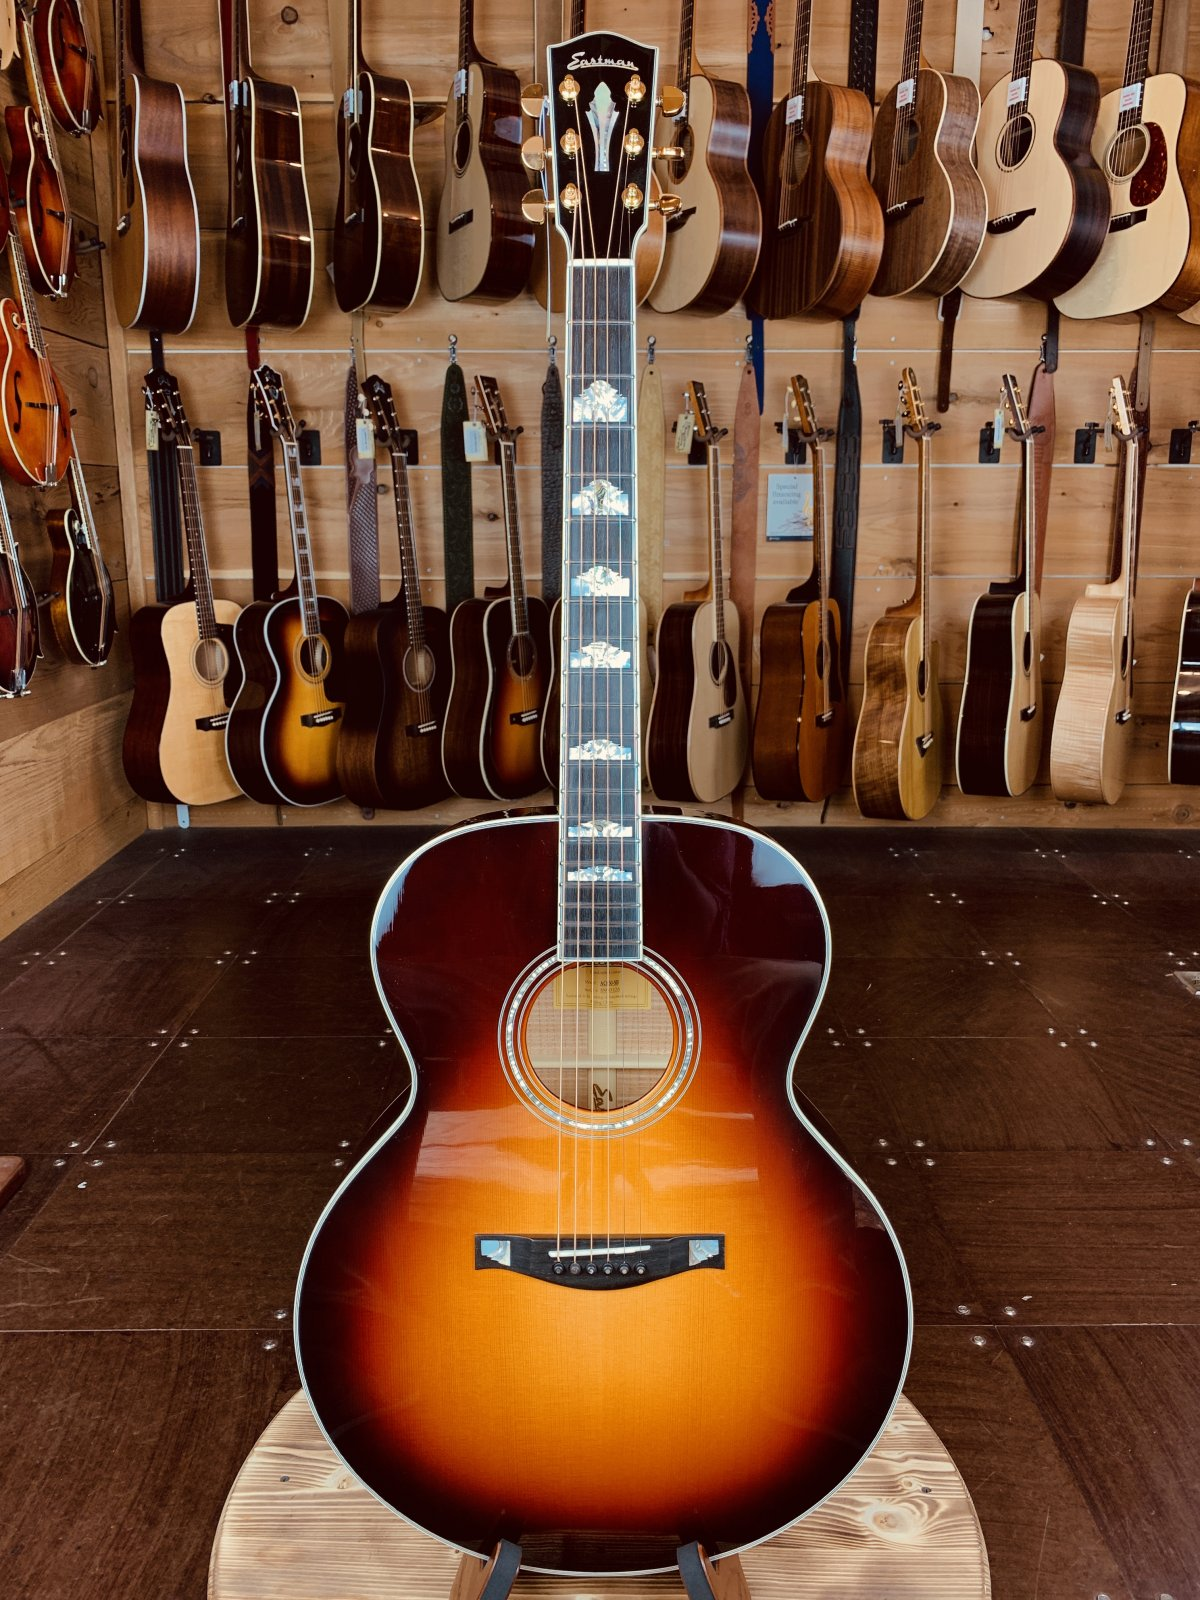 Eastman AC630-SB Sunburst Maple Jumbo Acoustic #0326 1 of a Kind Custom Guitar